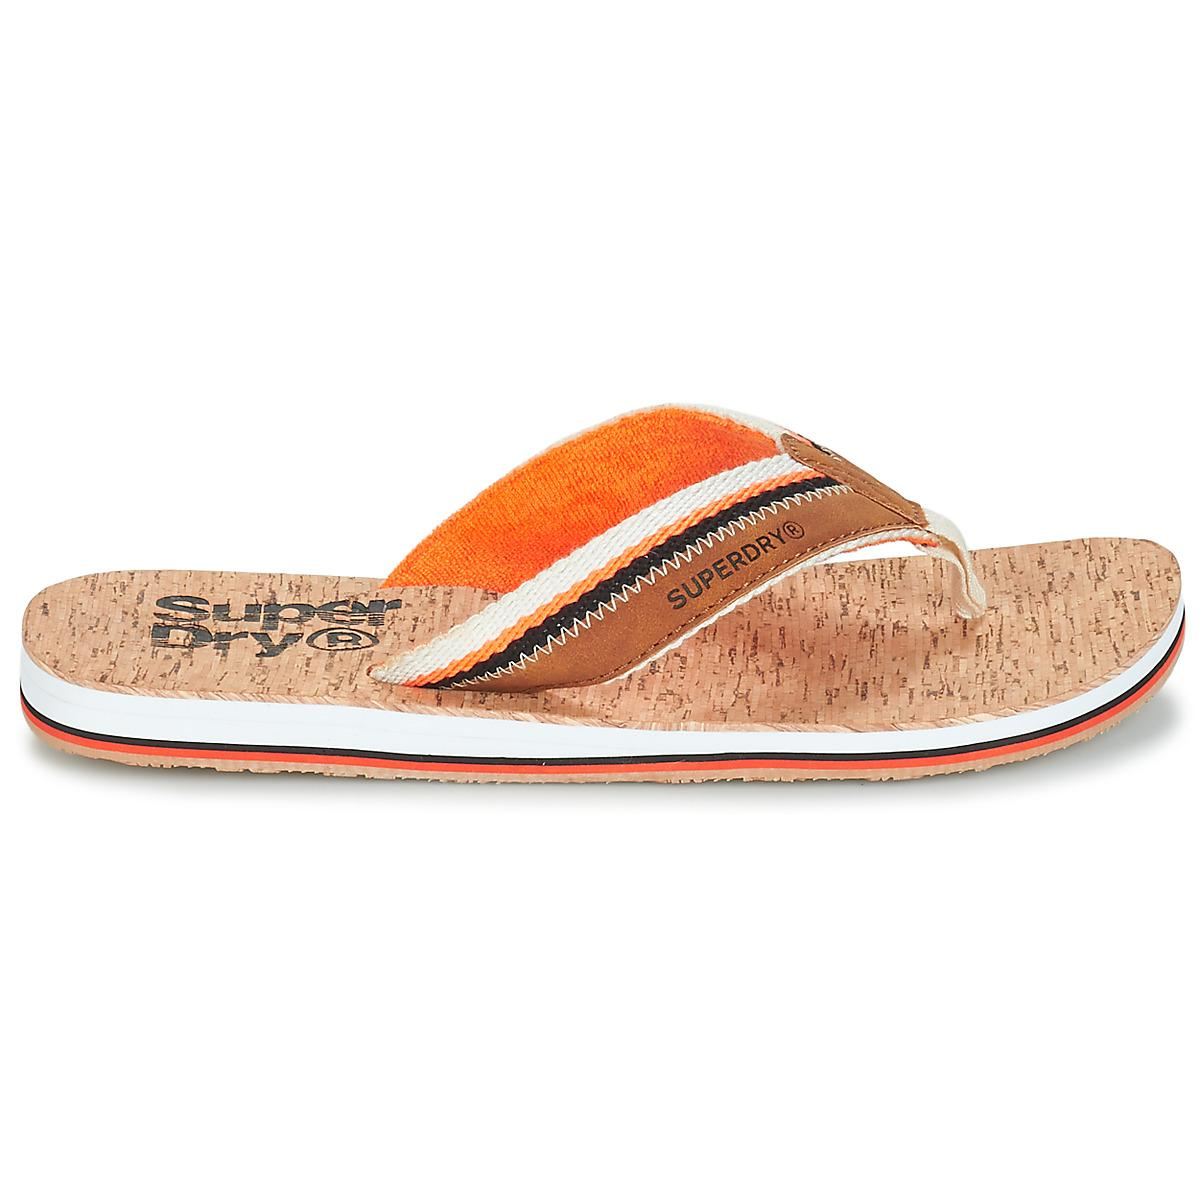 625b0a58b649 Superdry - Brown Roller Flip Flop Flip Flops   Sandals (shoes) for Men -.  View fullscreen